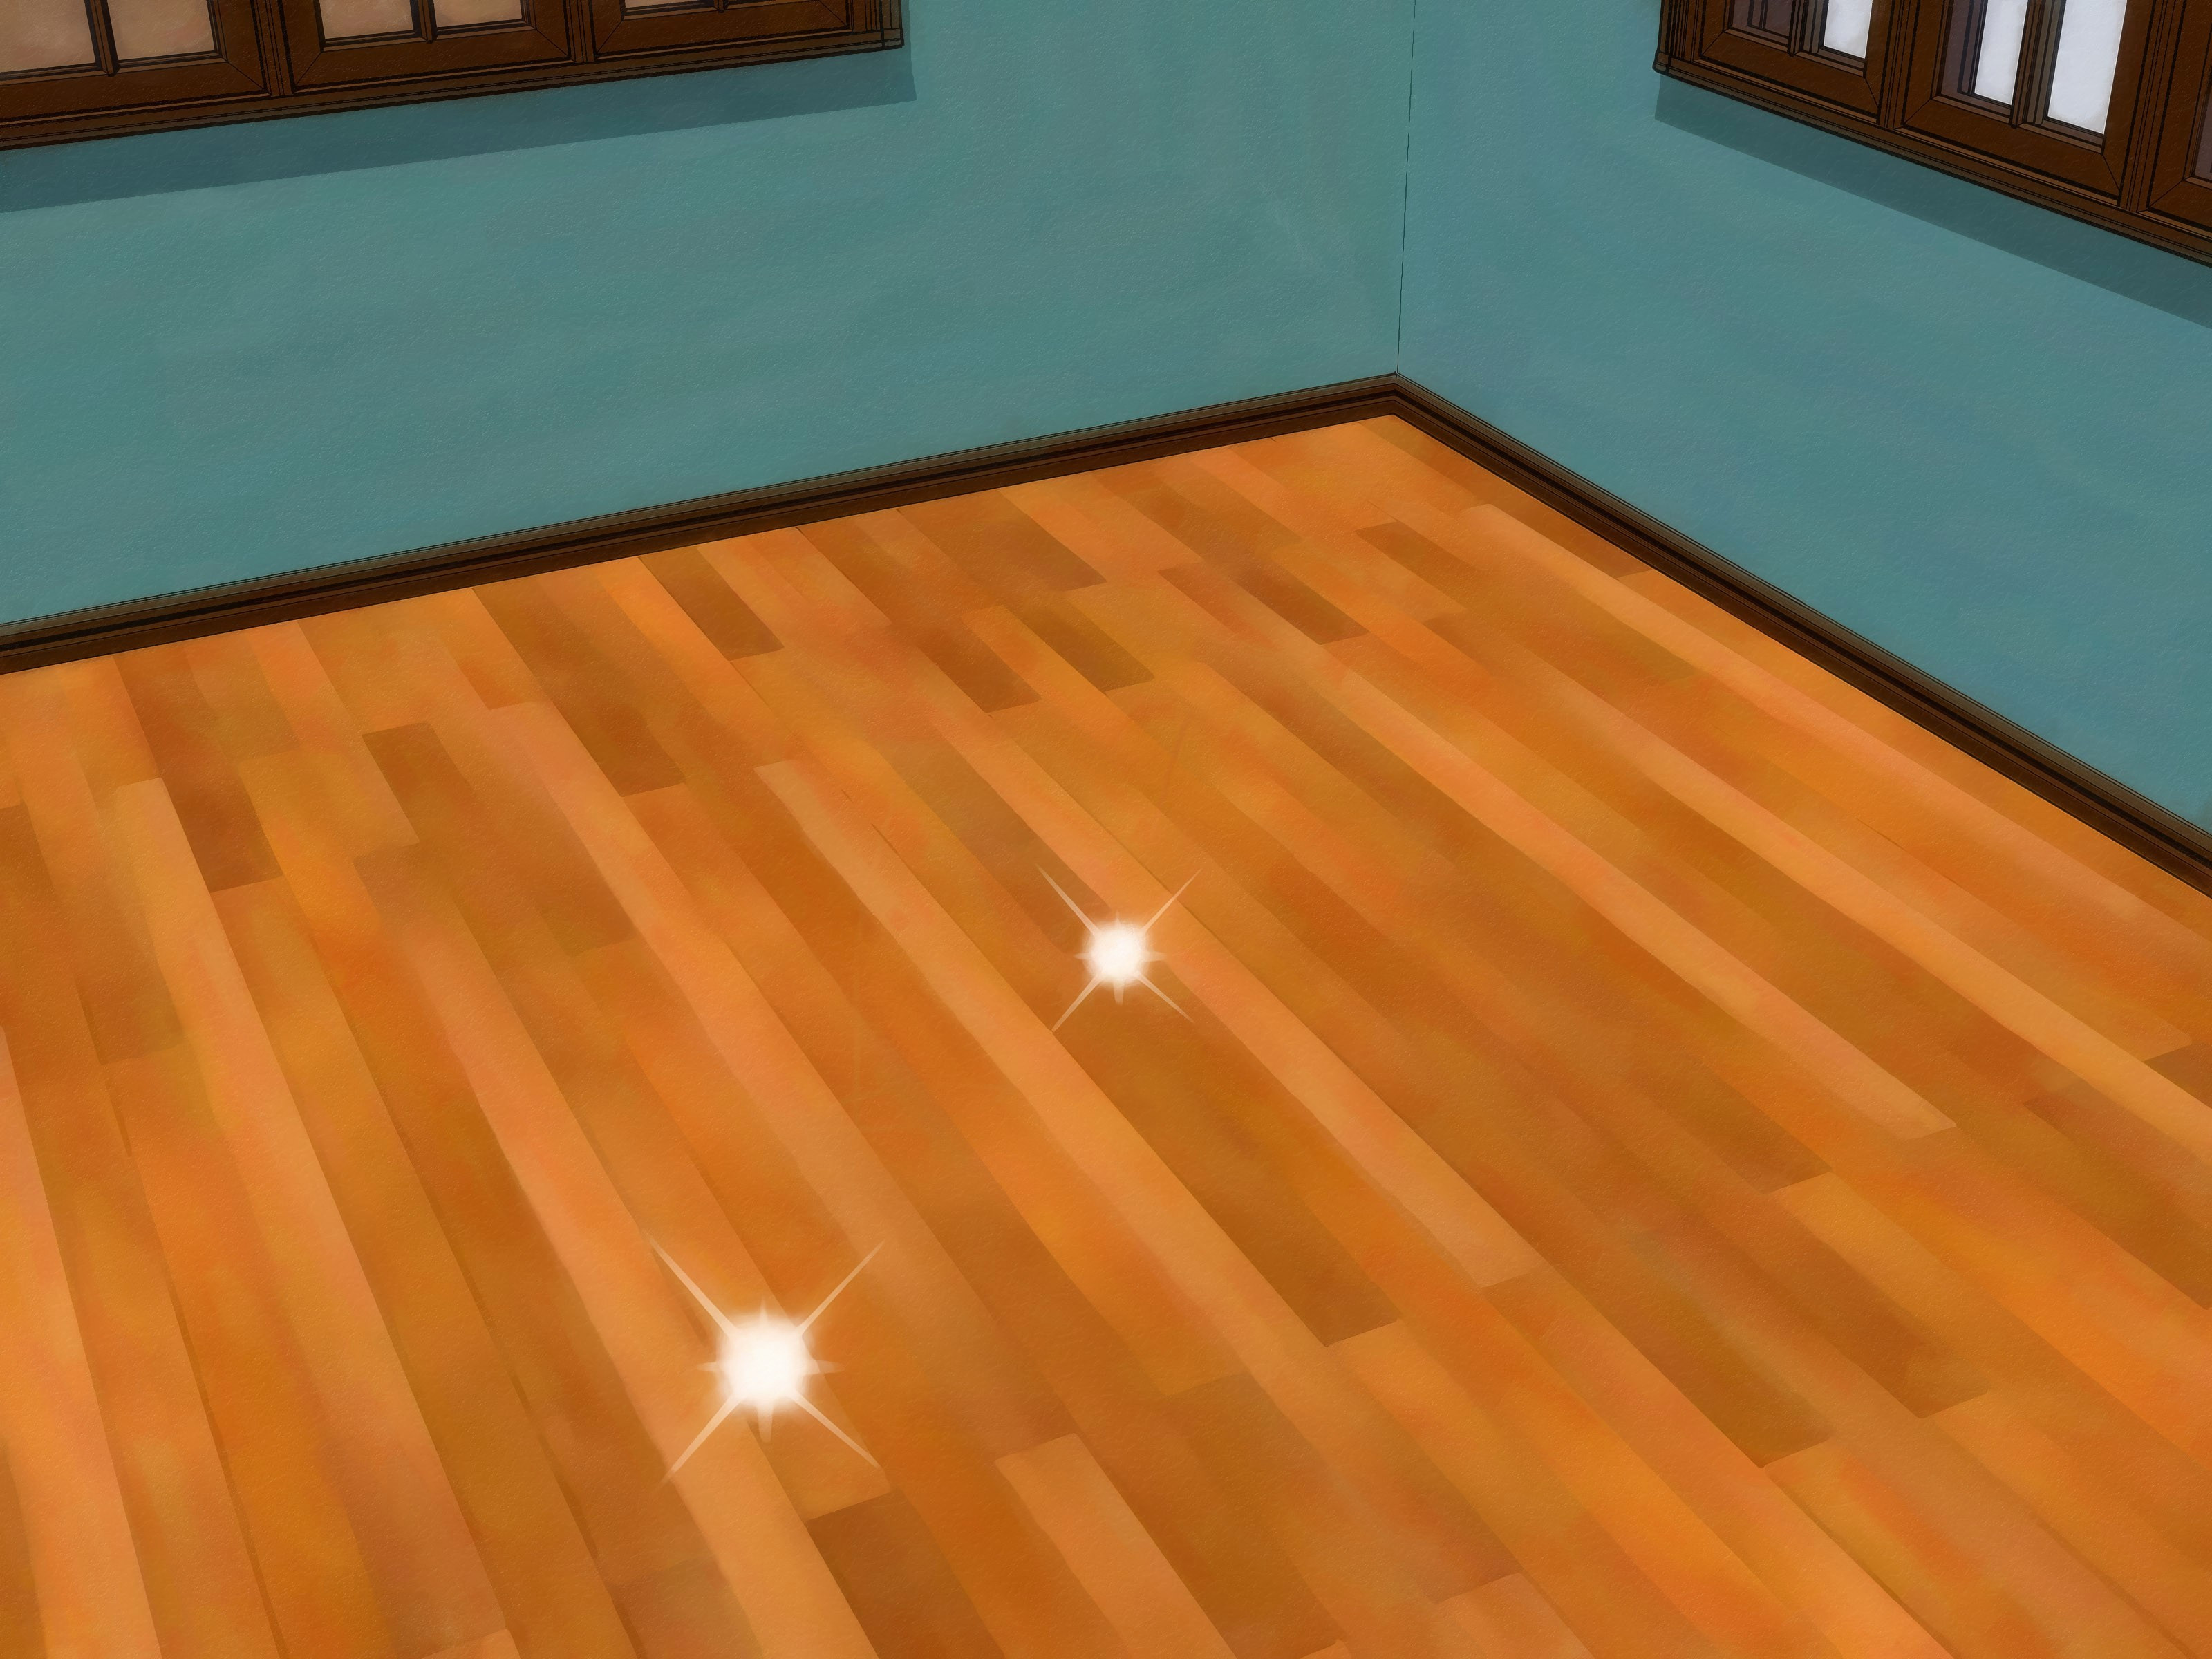 protect hardwood floors from scratches of 13 luxury repair hardwood floor collection dizpos com pertaining to repair hardwood floor awesome 50 best how to get wax f hardwood floors graphics 50 s